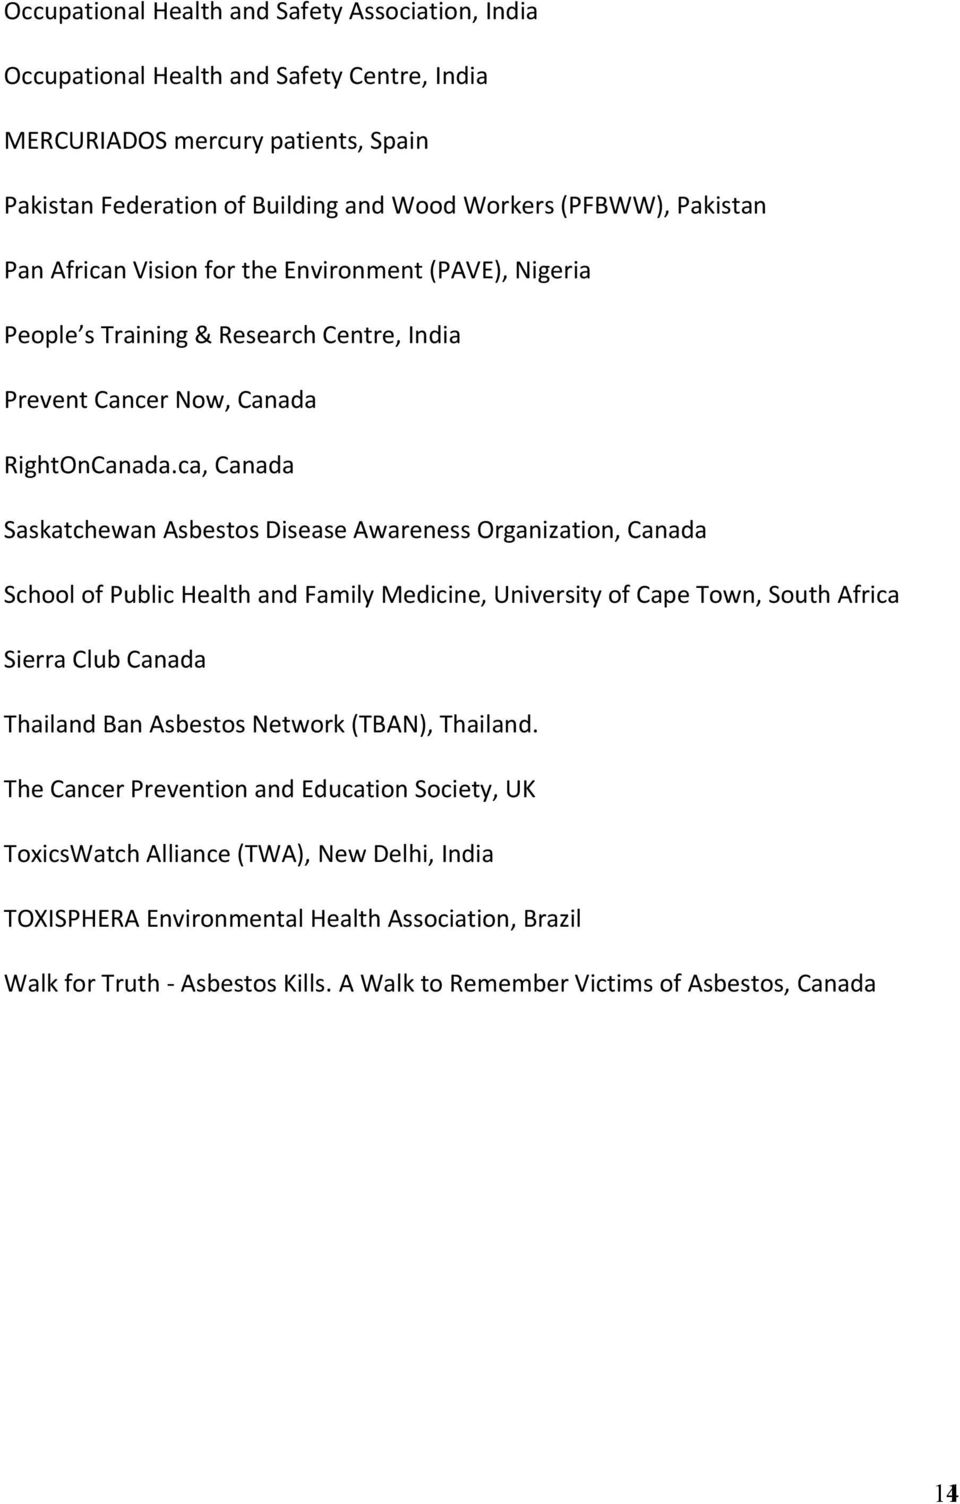 ca, Canada Saskatchewan Asbestos Disease Awareness Organization, Canada School of Public Health and Family Medicine, University of Cape Town, South Africa Sierra Club Canada Thailand Ban Asbestos